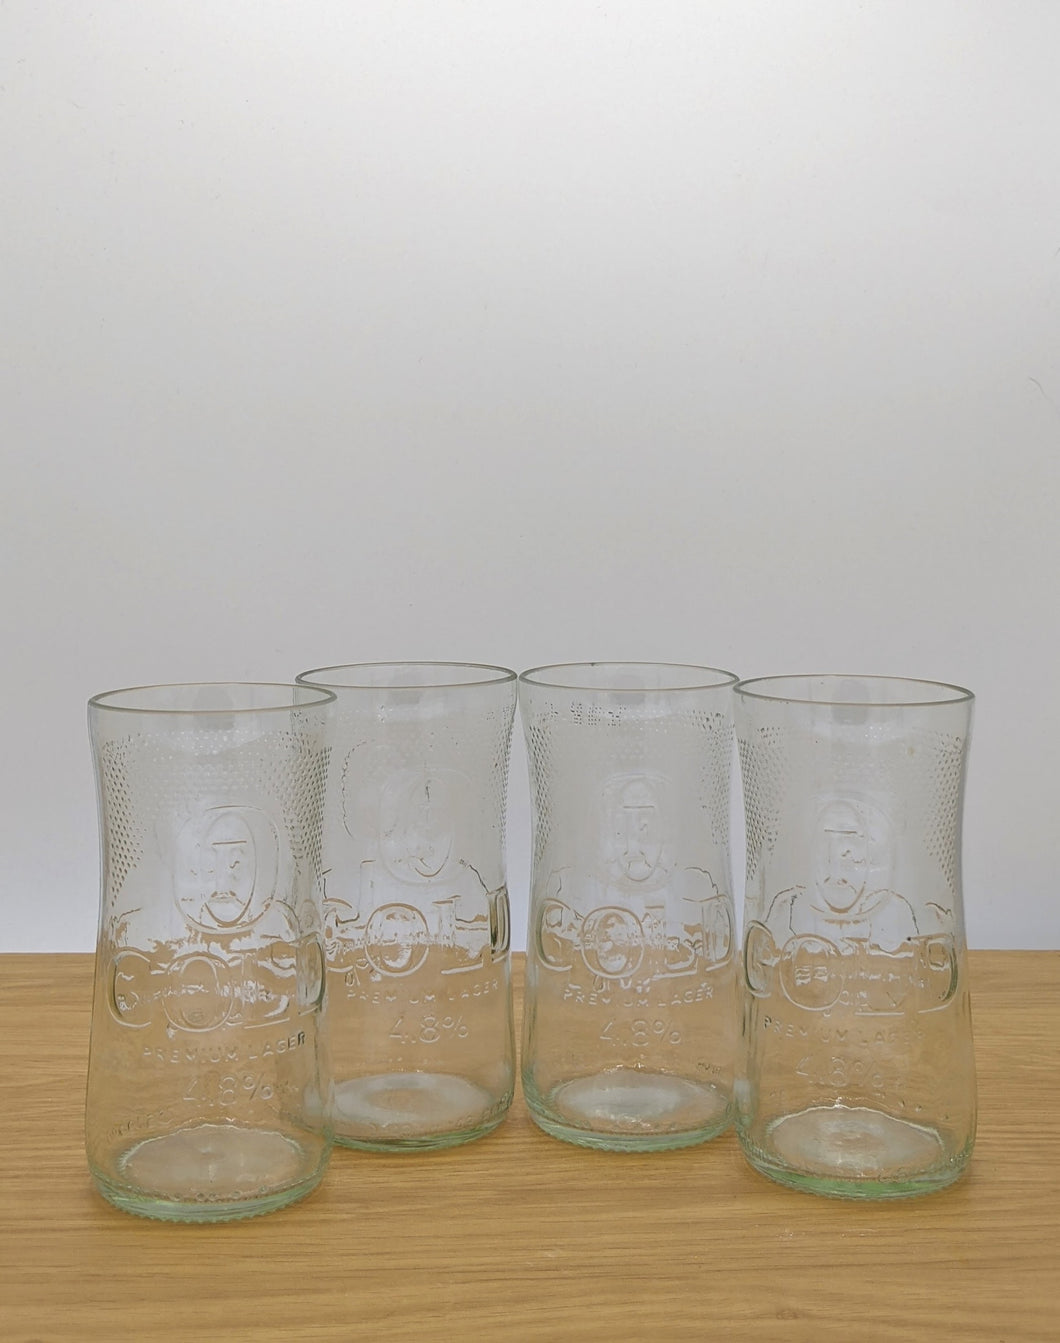 Fosters beer bottle tumblers (set of four)